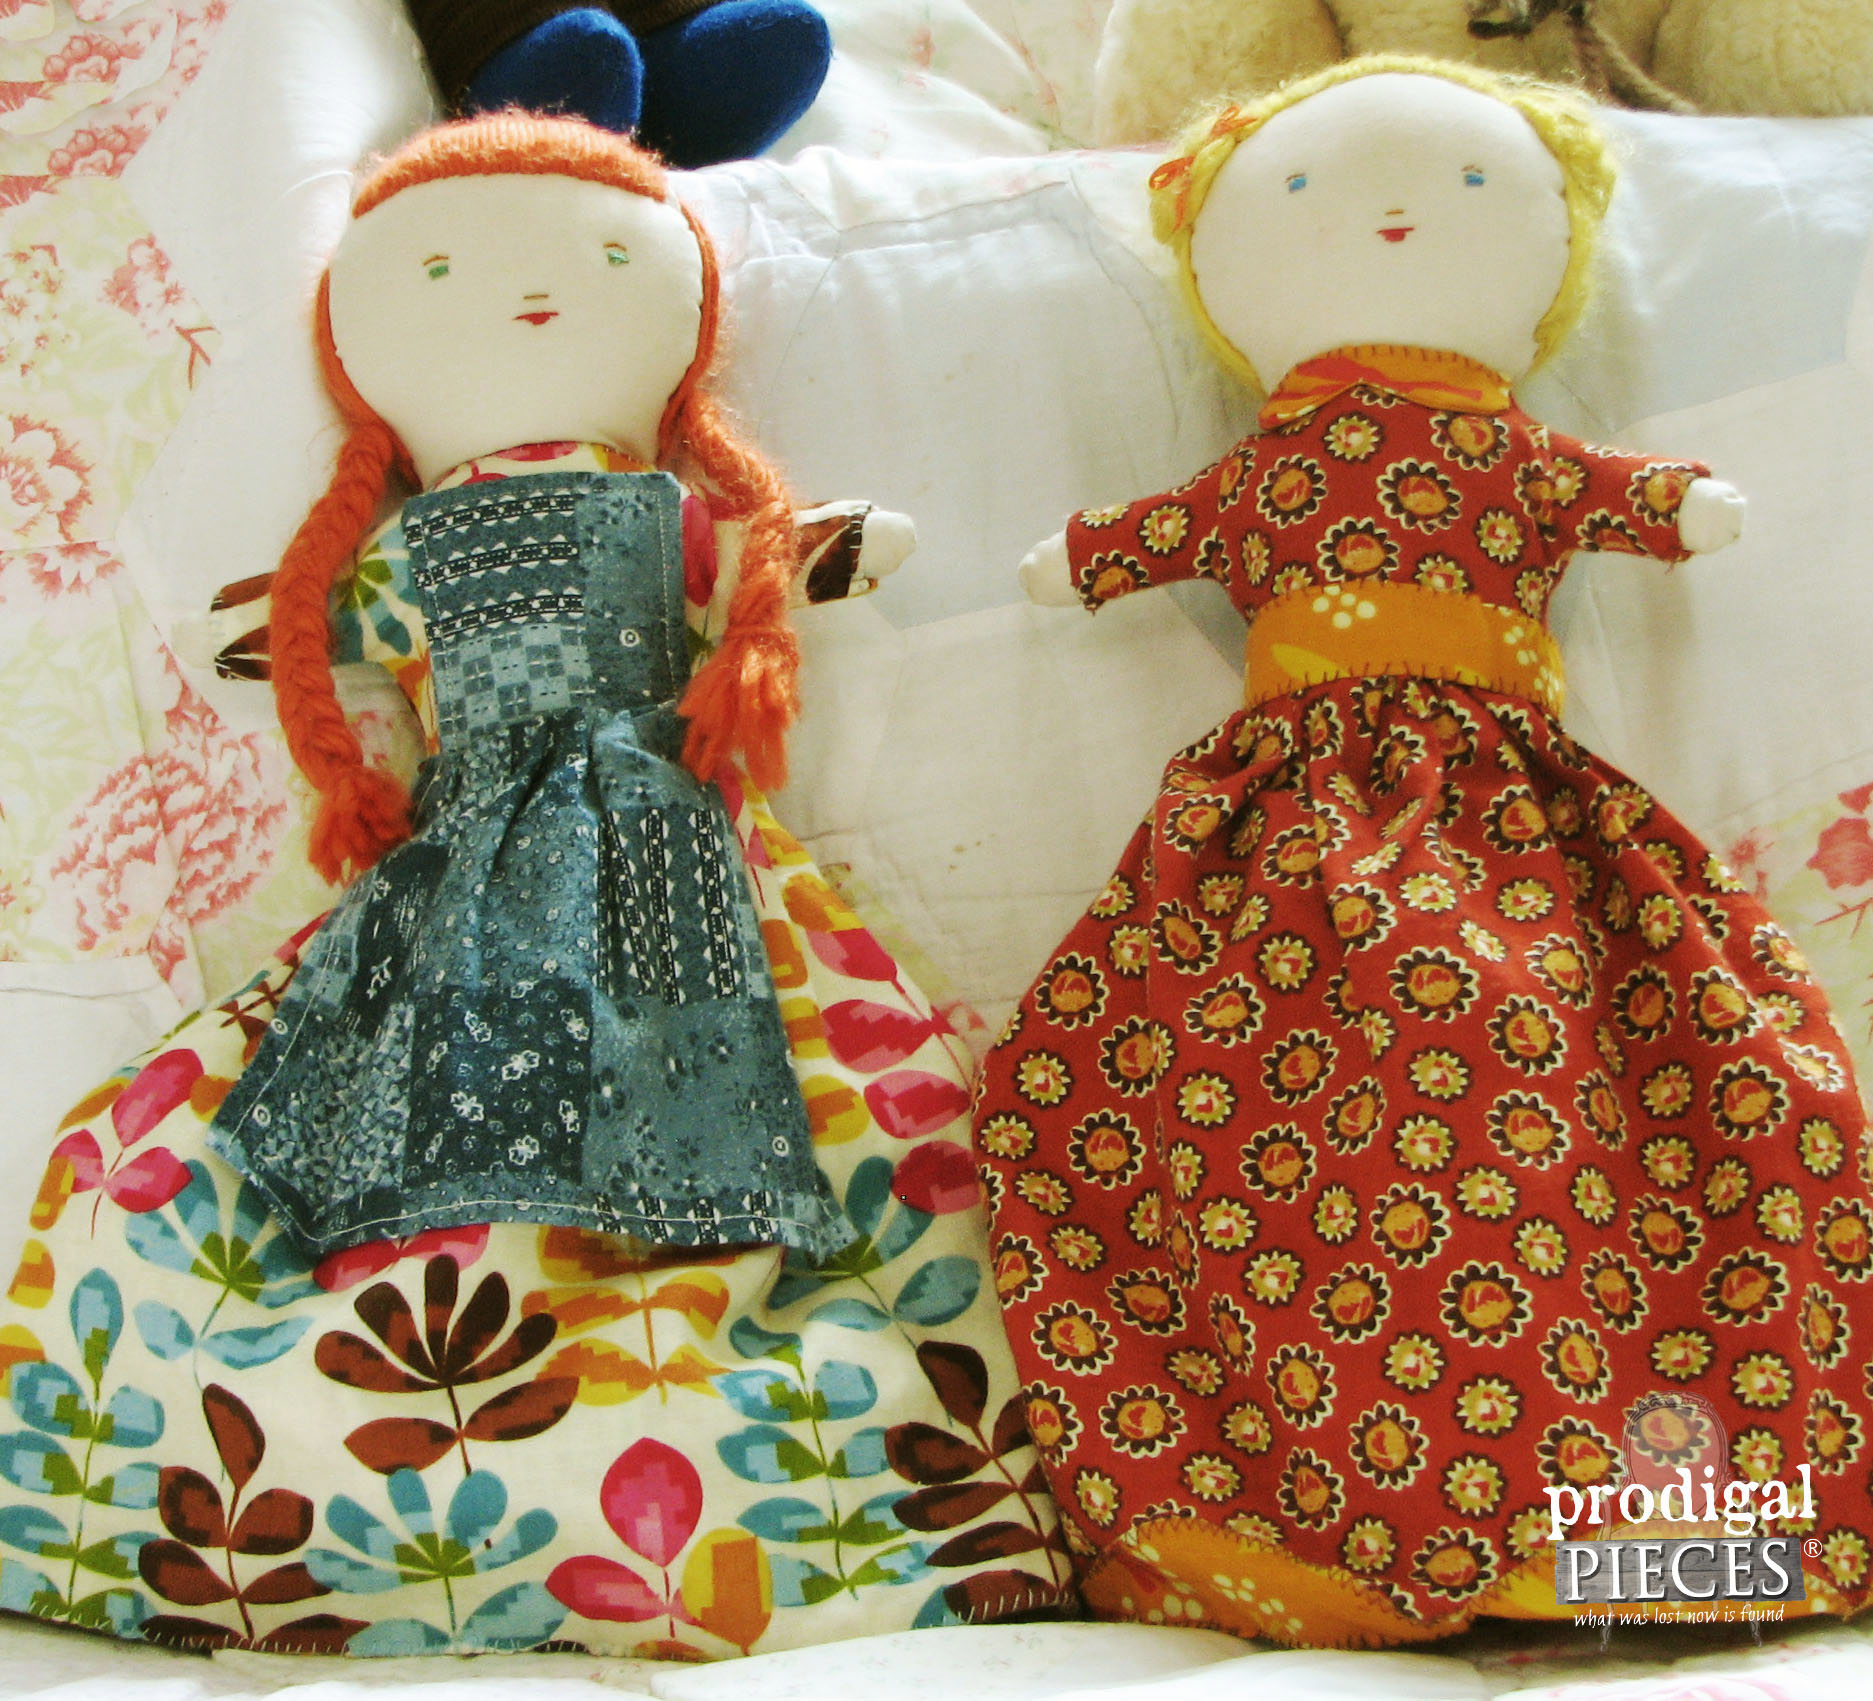 Pair of Handmade Topsy Turvy Dolls by Prodigal Pieces | www.prodigalpieces.com